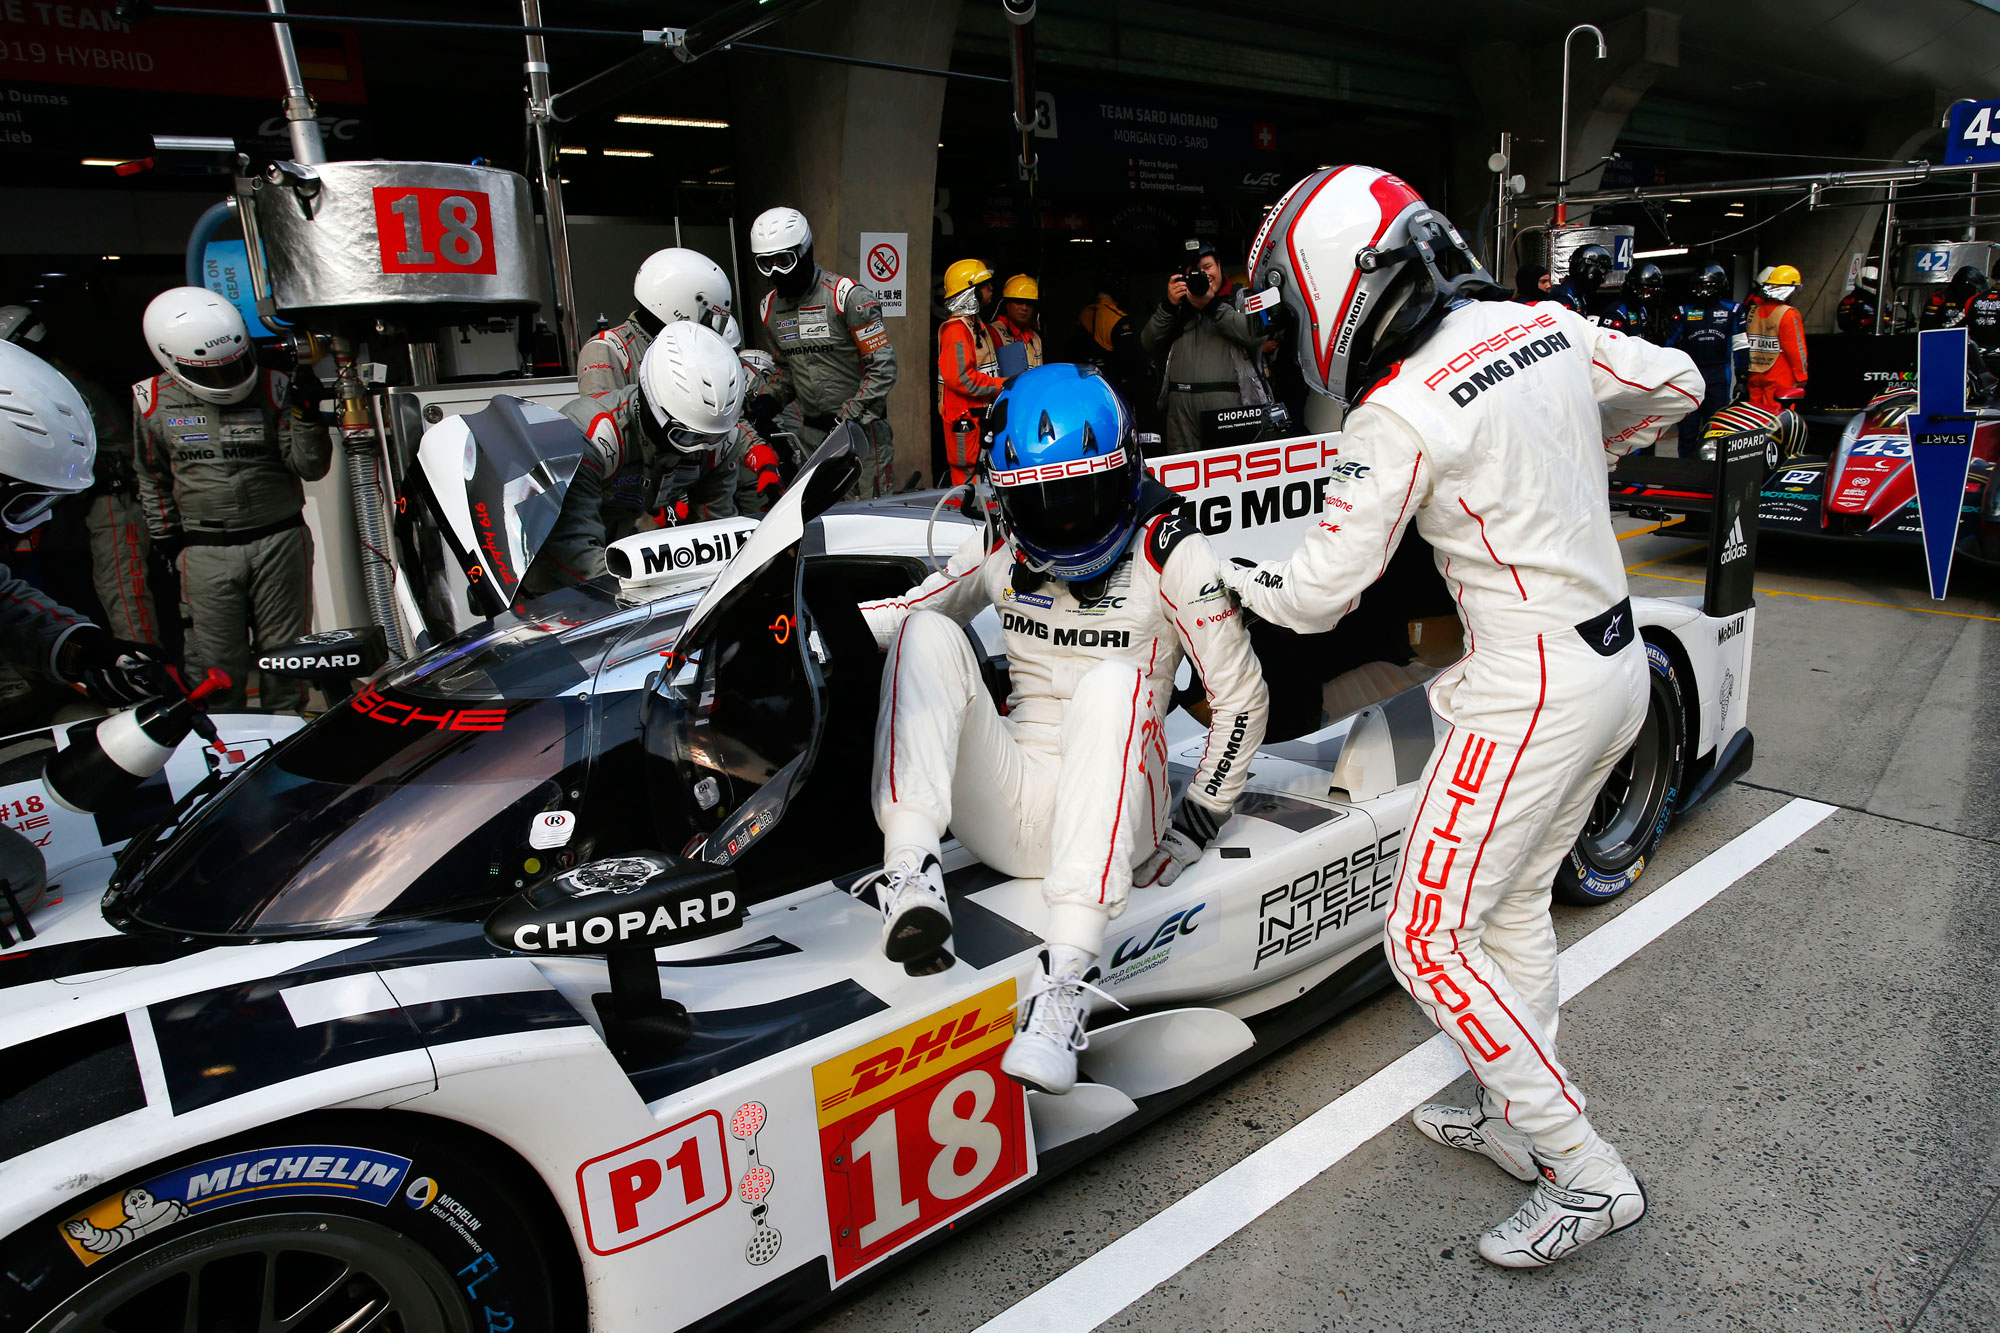 Porsche Score 1-2 in Shanghai To Become FIA WEC World Champions For 2015 11